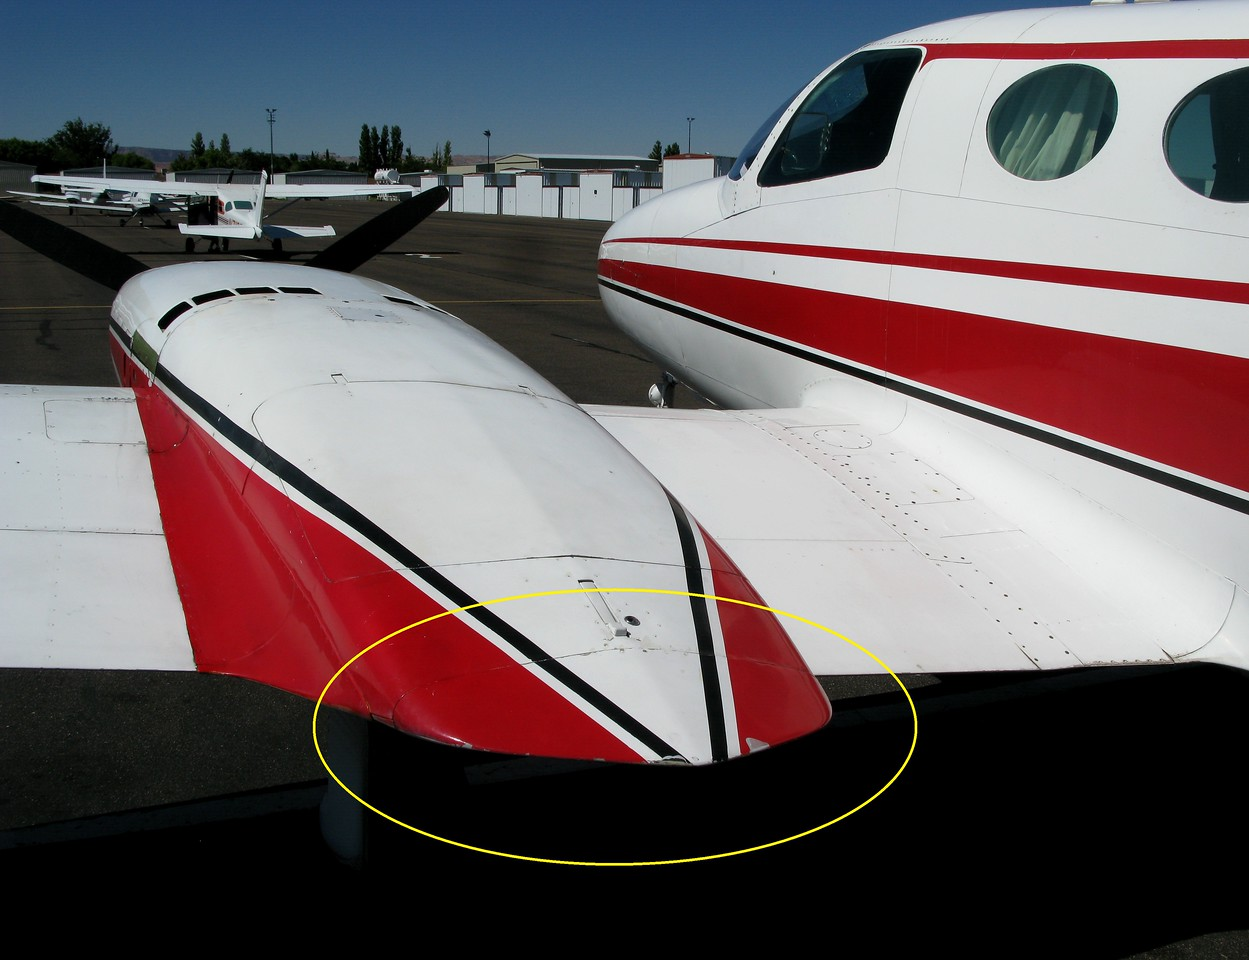 The engine nacelle end caps were located just behind the wing locker baggage compartments on each nacelle.